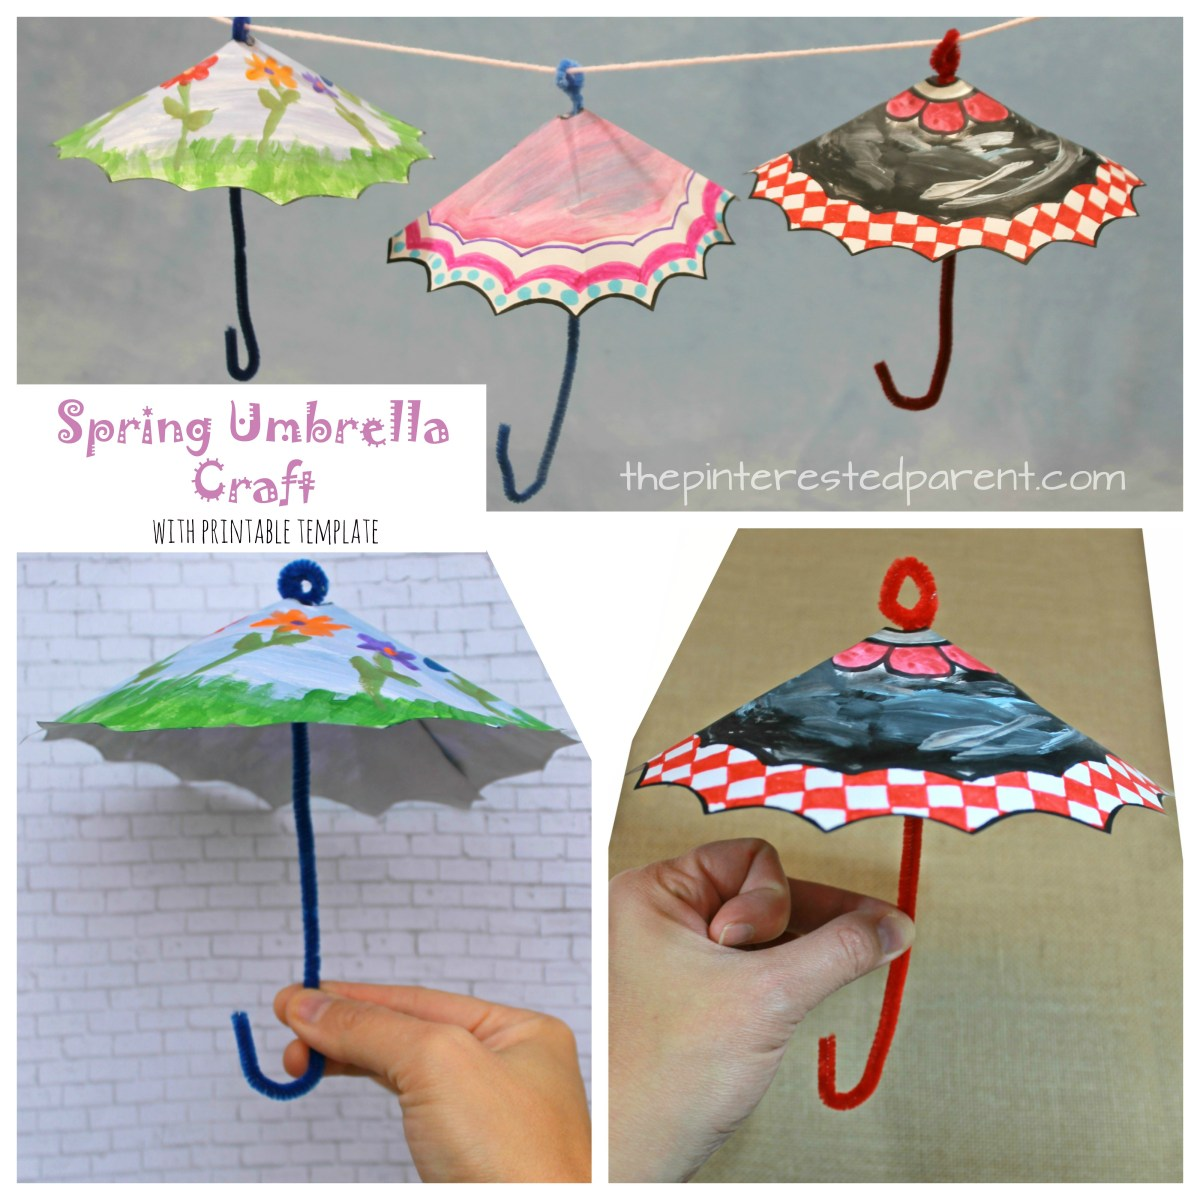 Spring Umbrella Craft With Printable